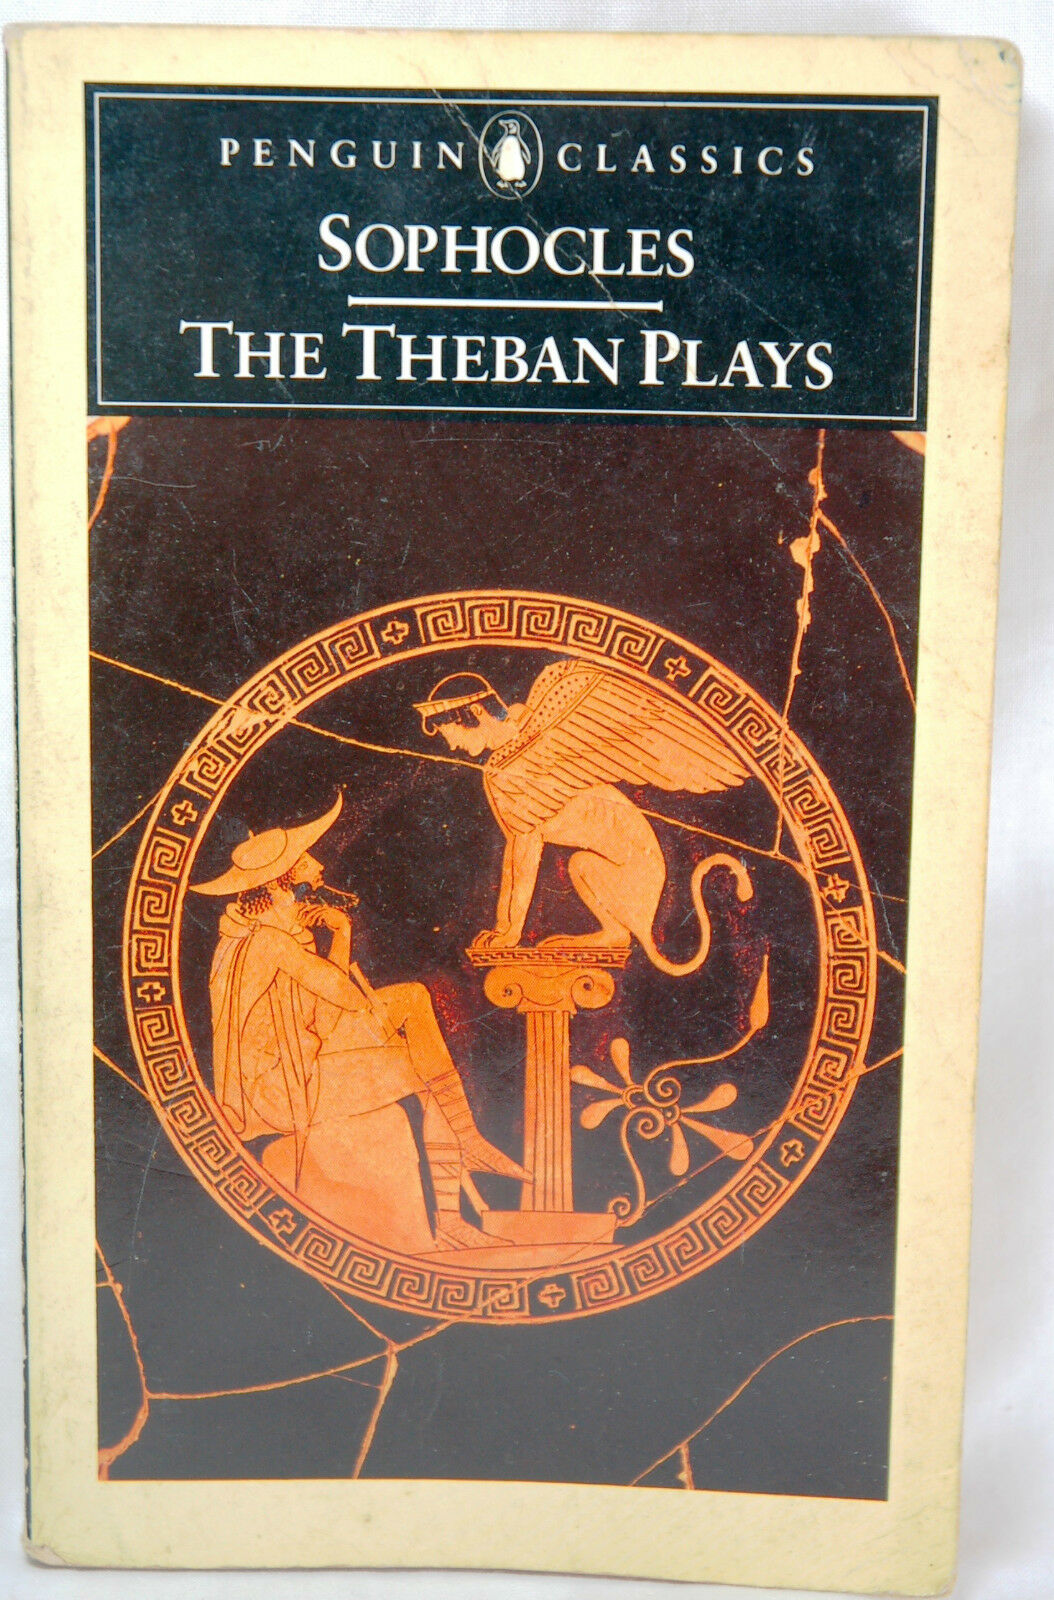 an analysis of the oedipus the king a play by sophocles Get all the key plot points of sophocles's oedipus rex on oedipus rex summary from litcharts corinth with the news that oedipus's father, king.